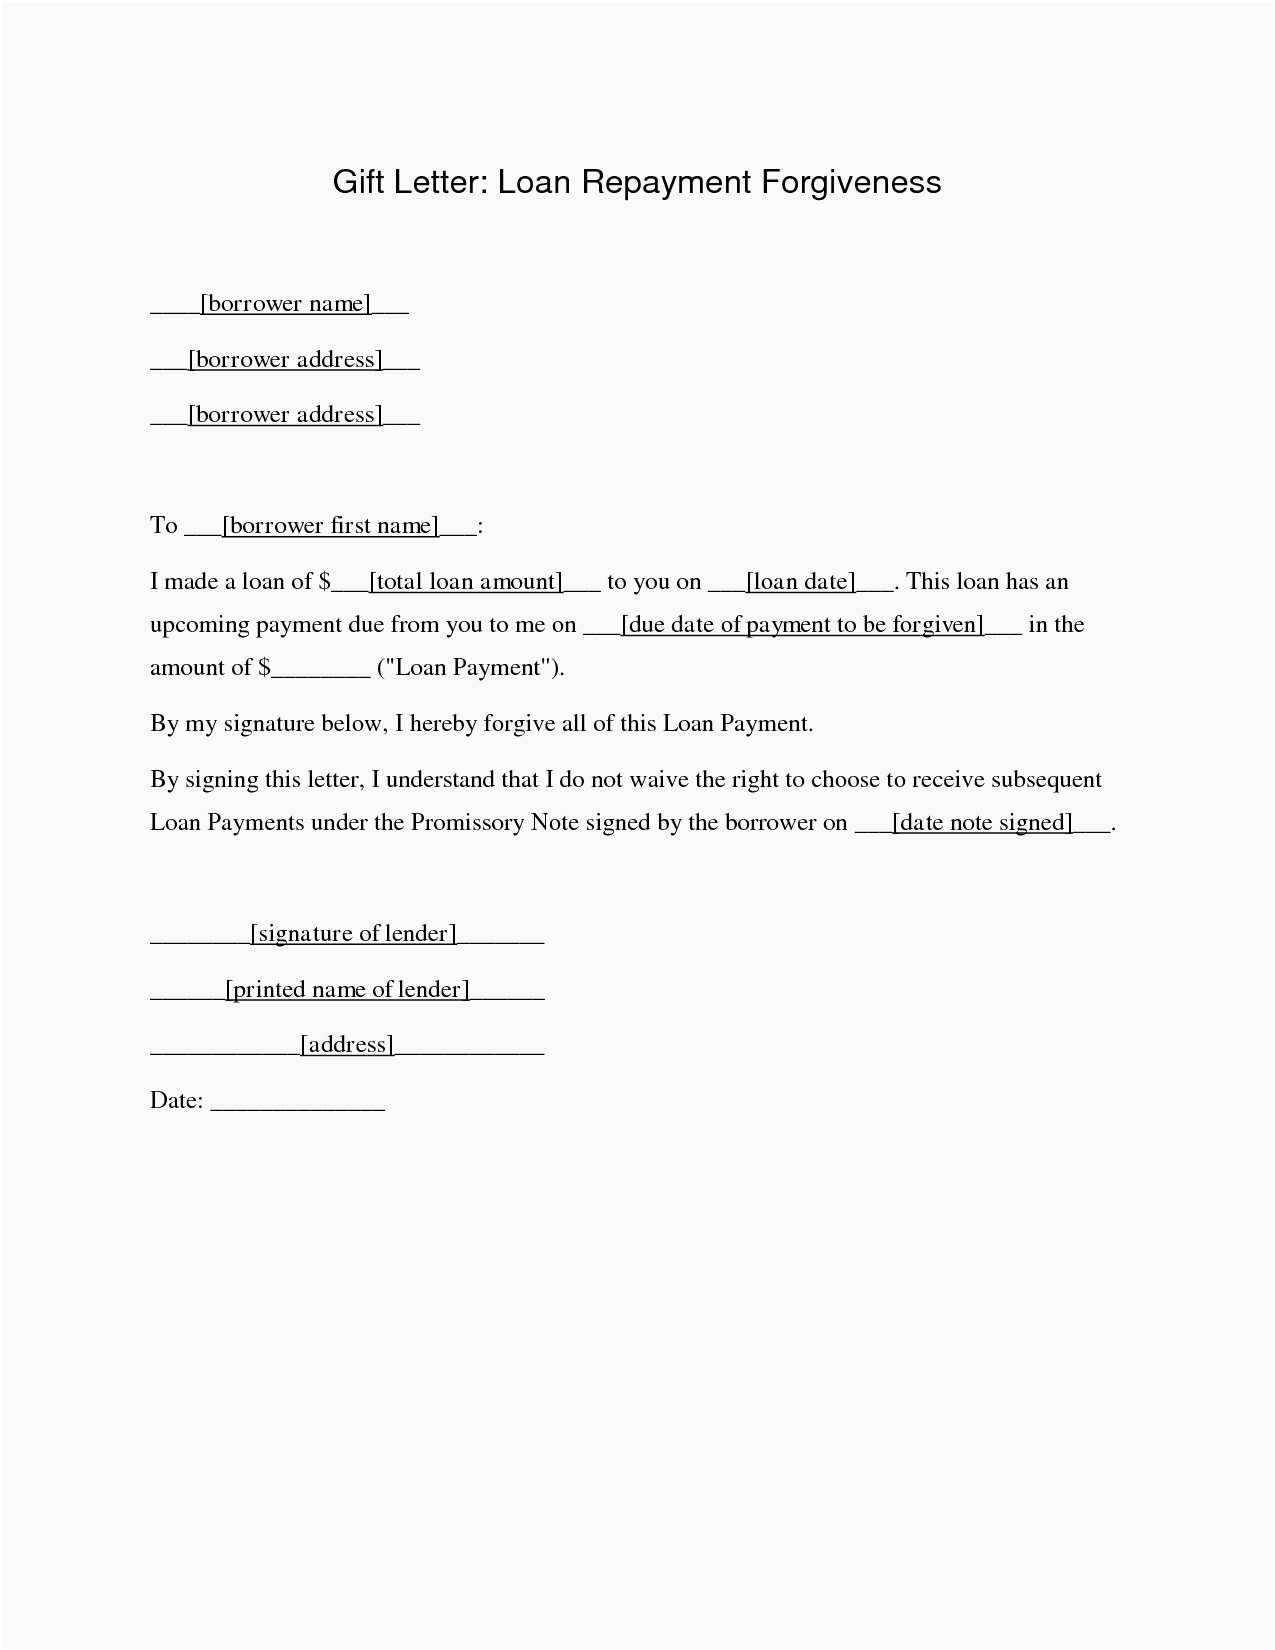 Fedloan Deferment Form Model Student Loan Forgiveness Letter Gallery